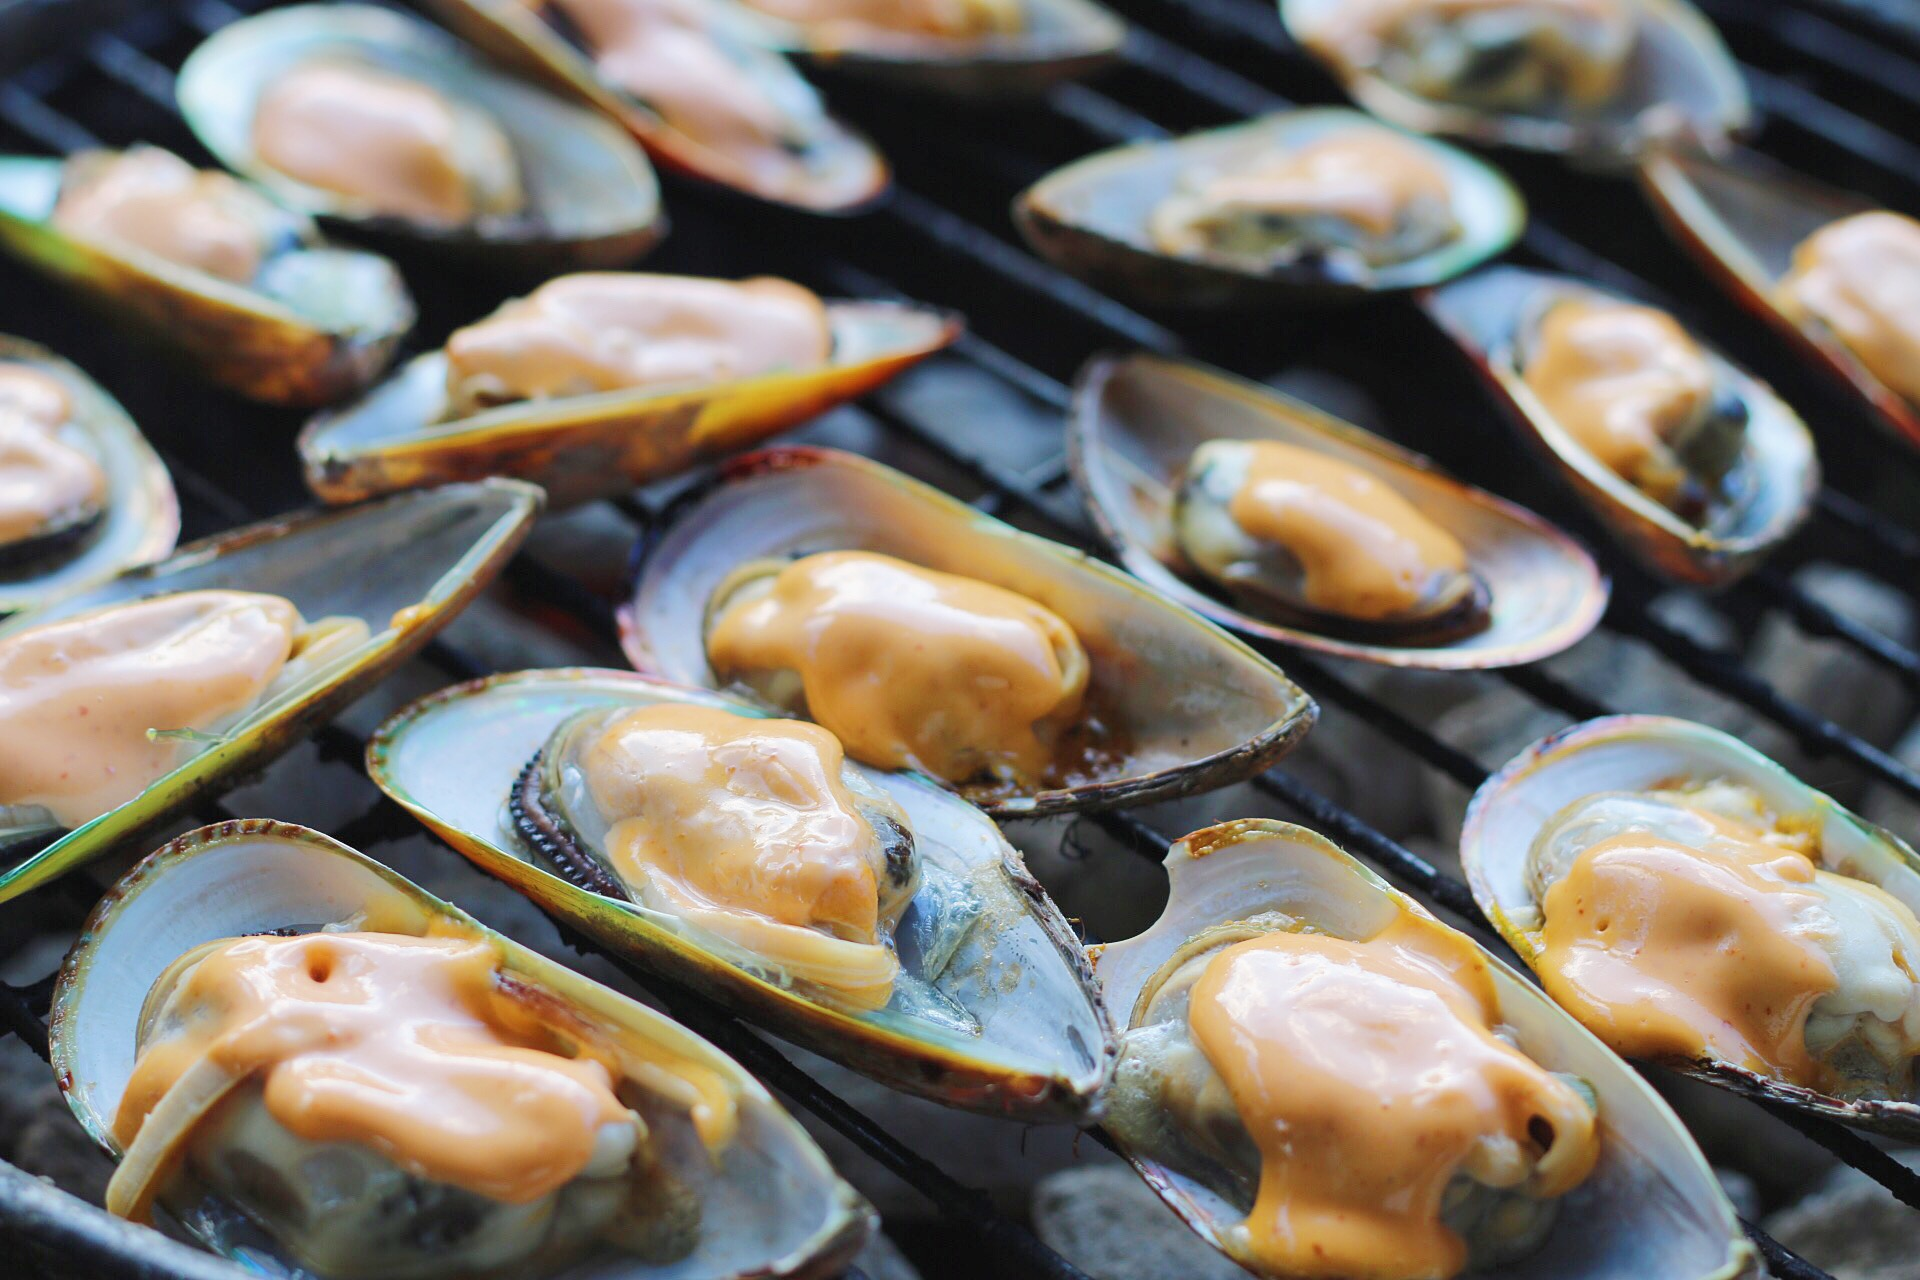 Grill your clean mussels for a few mins. Add Sriracha Mayo on top.